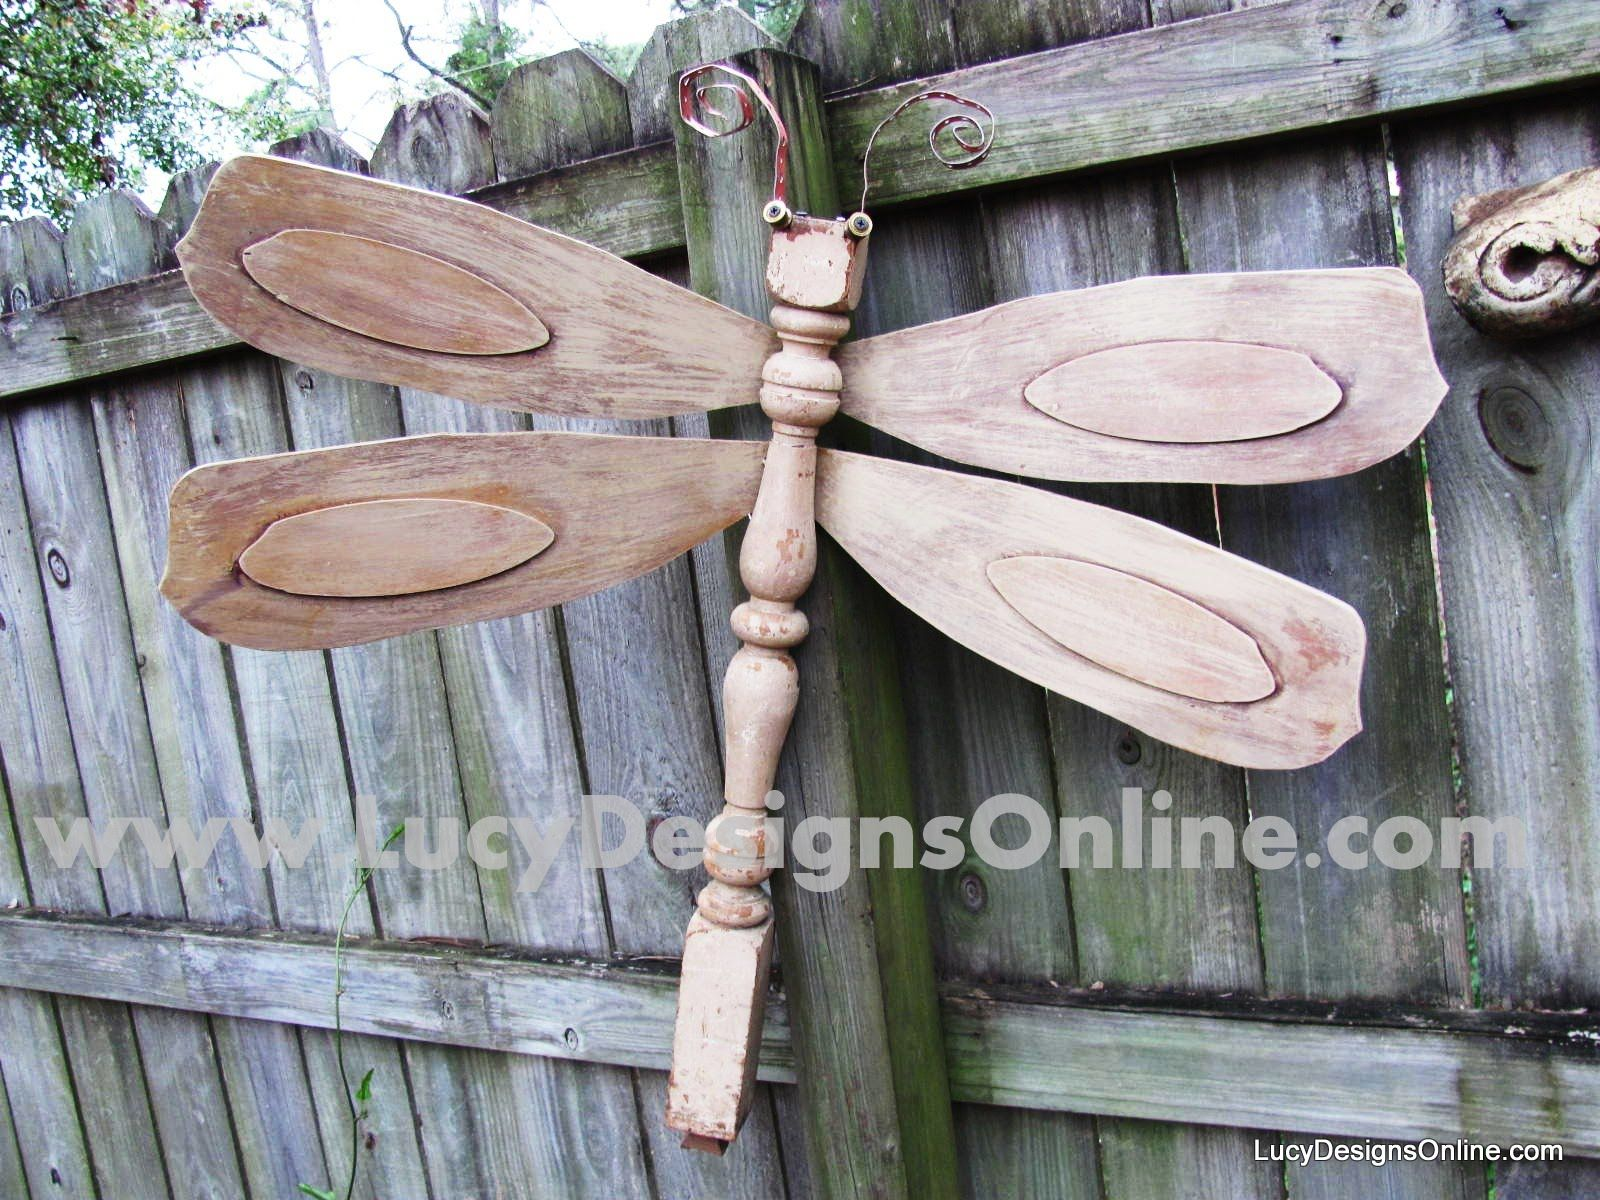 Lucy Designs The Original Table Leg Dragonflies With Ceiling Fan Blade Wings Actual Instruction